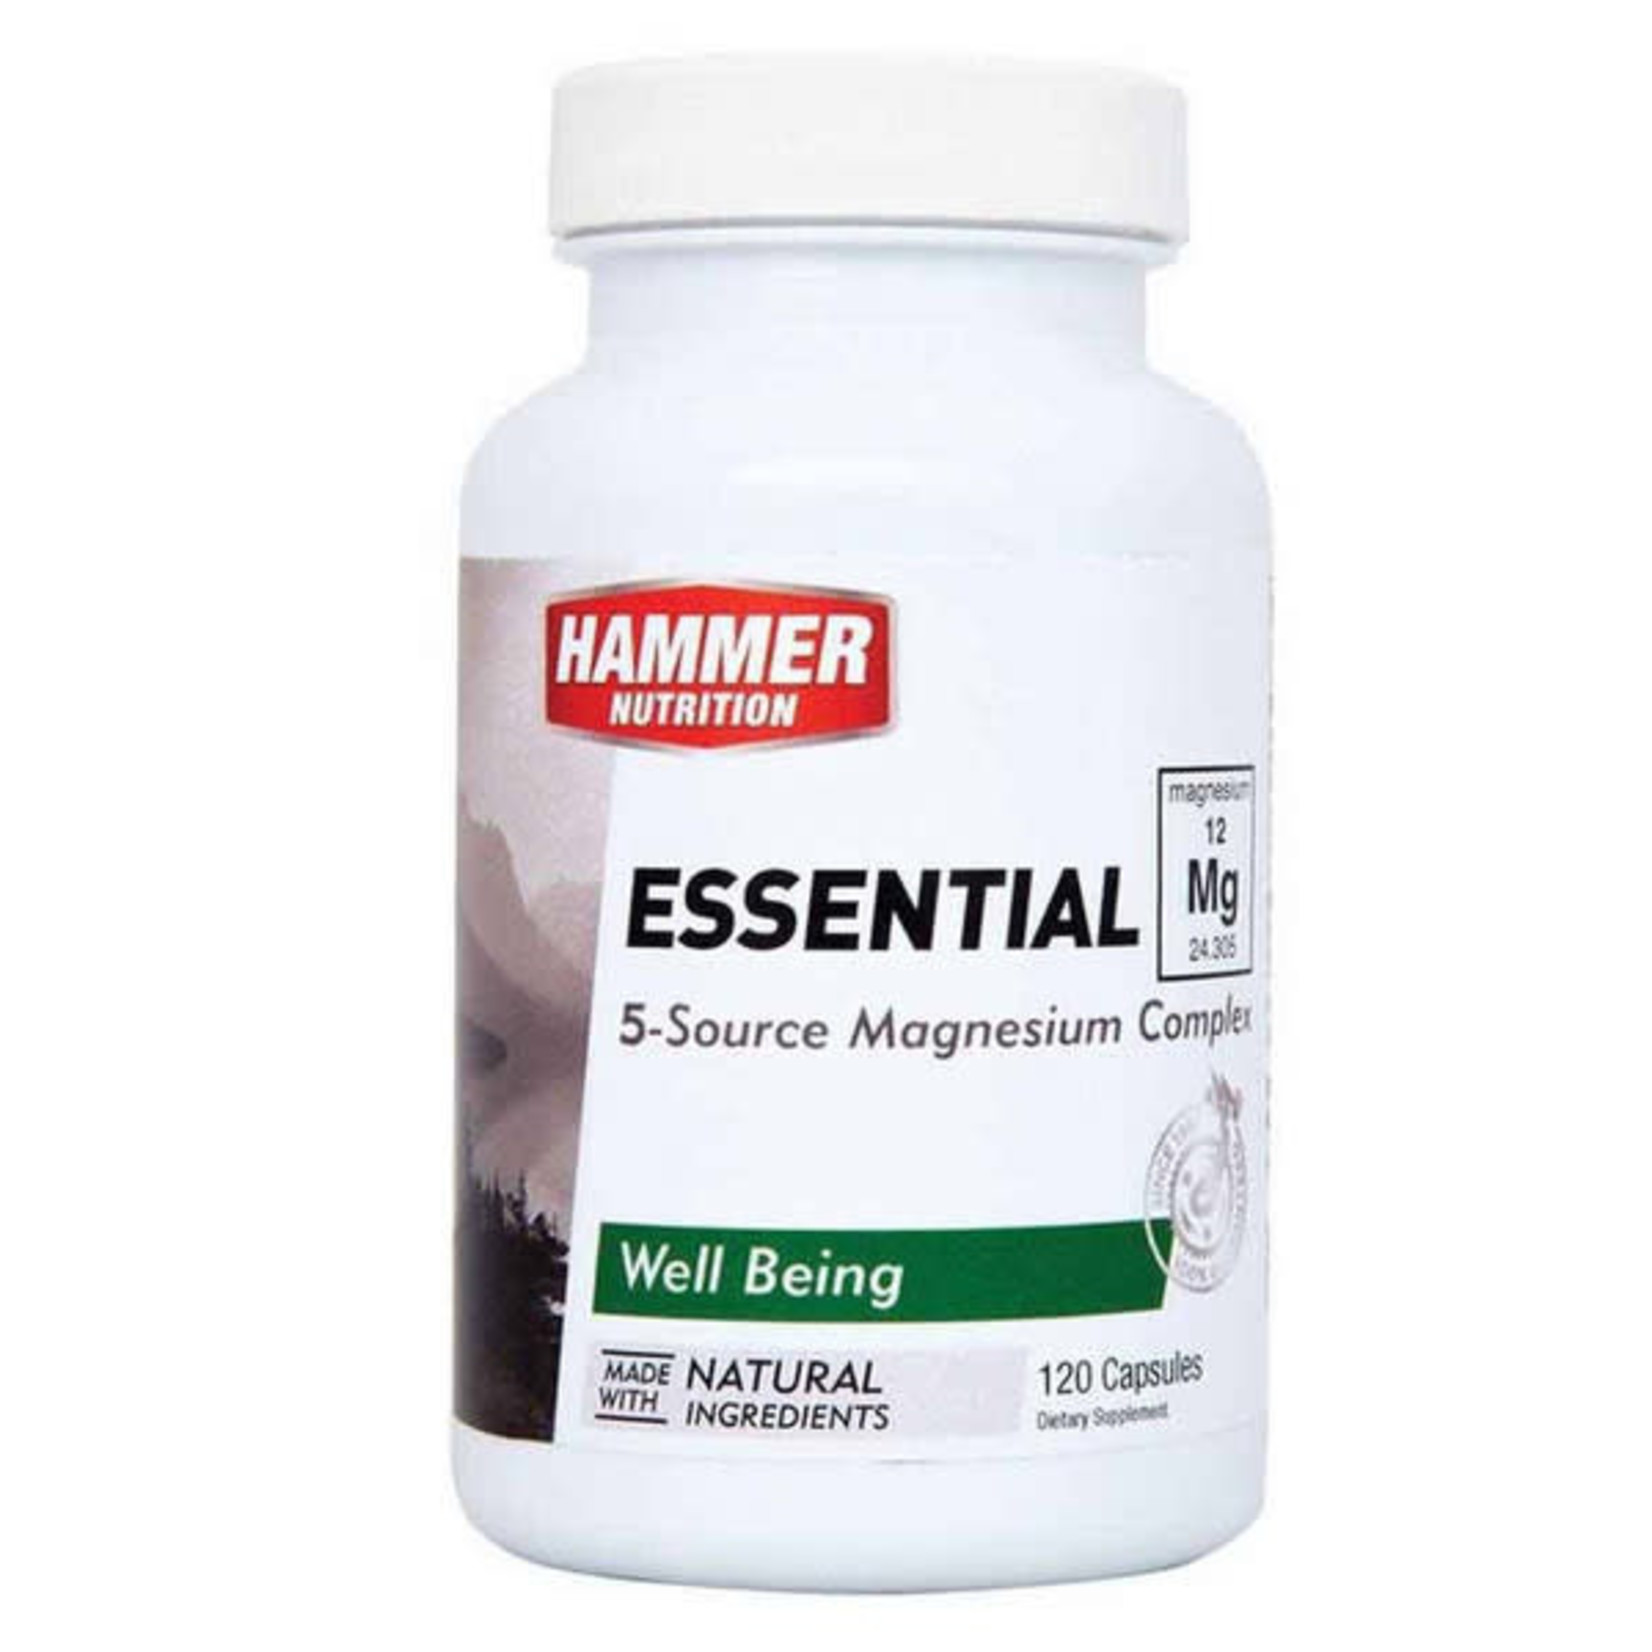 Hammer Nutrition Hammer 5 Source Magnesium Essential Mg 120ct Capsules